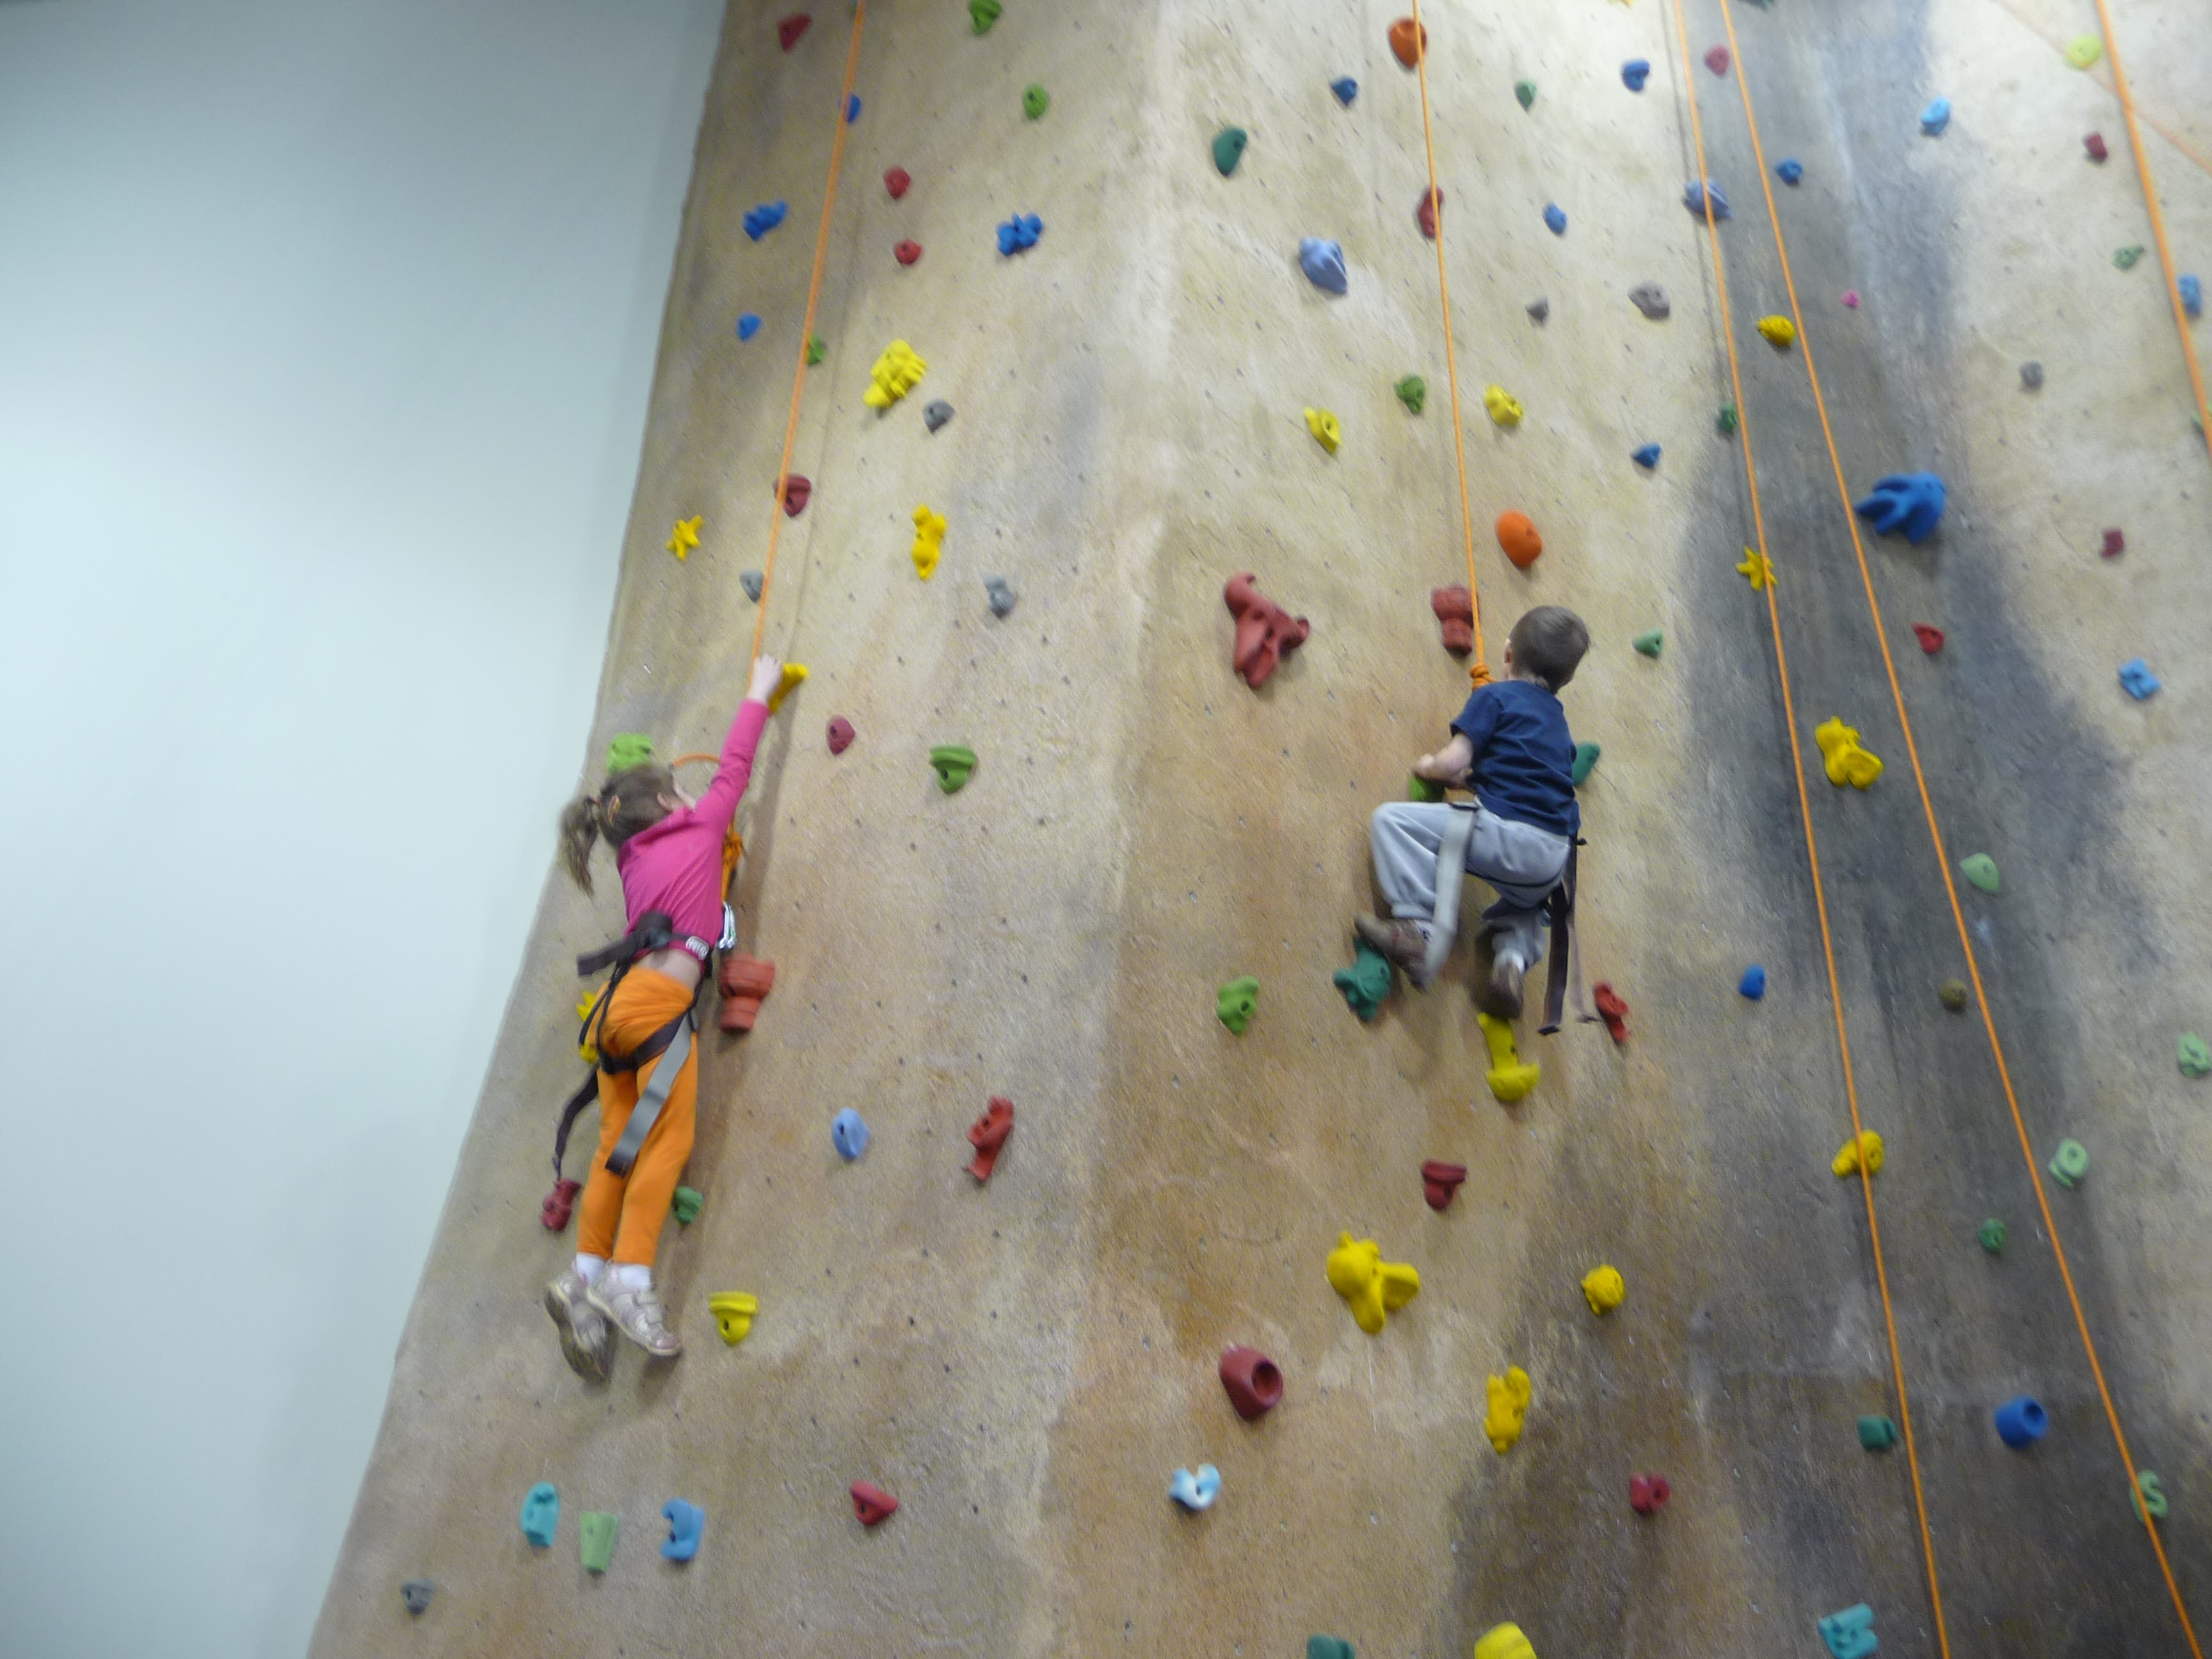 Gravity Vault Officially Opens in Chatham | Chatham, NJ Patch